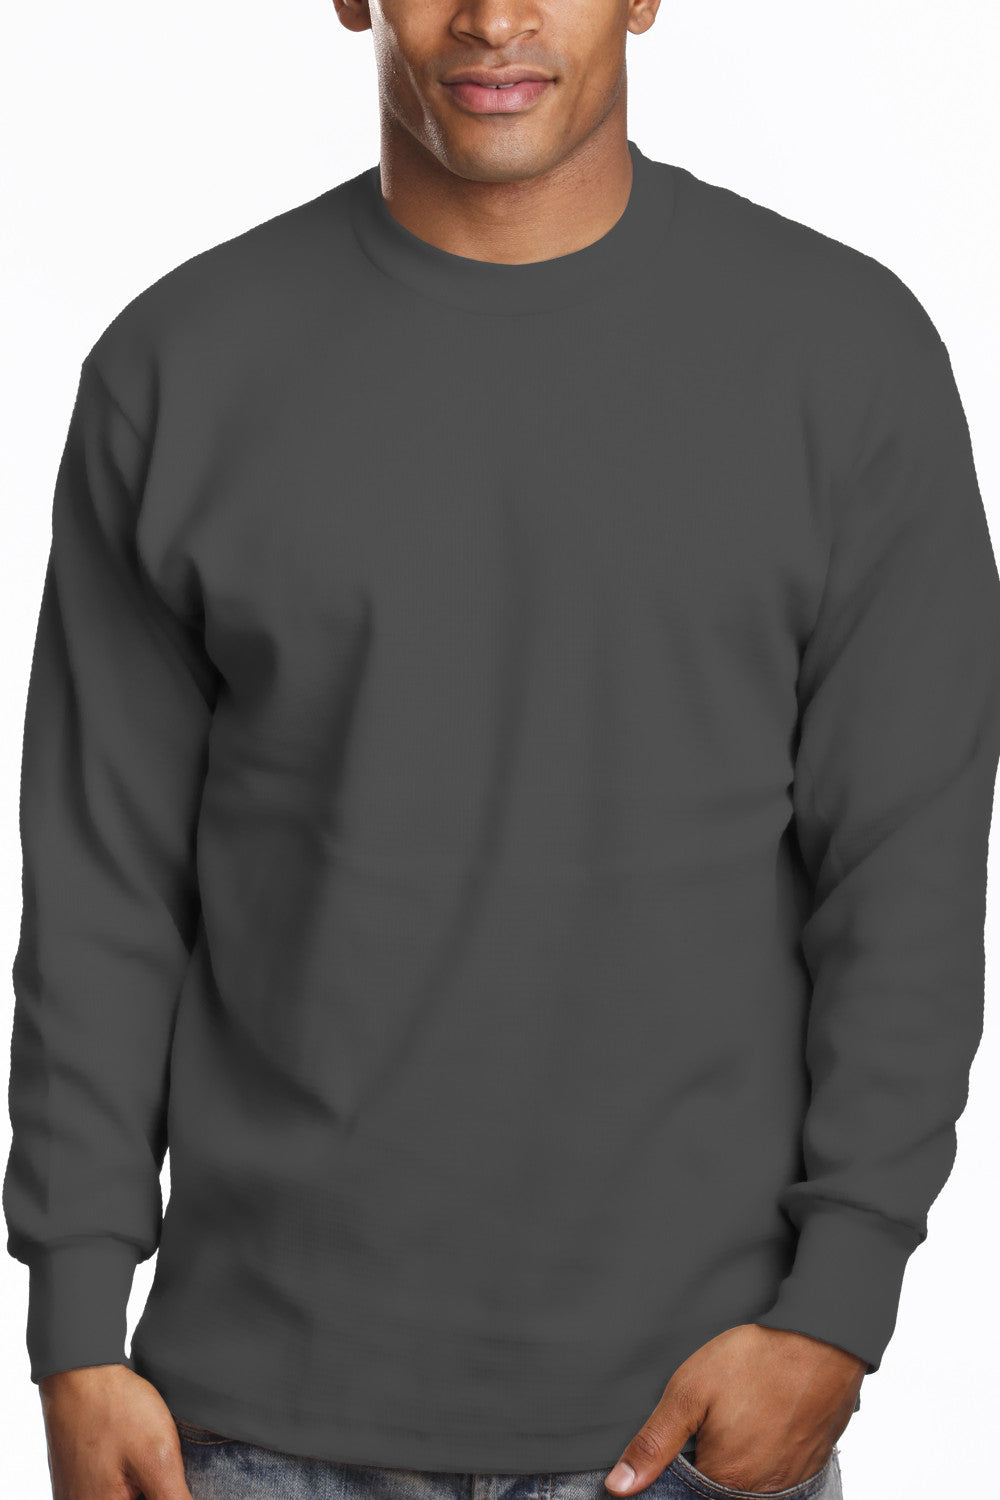 Mens Long Sleeve Super Heavy Shirt Dark Grey